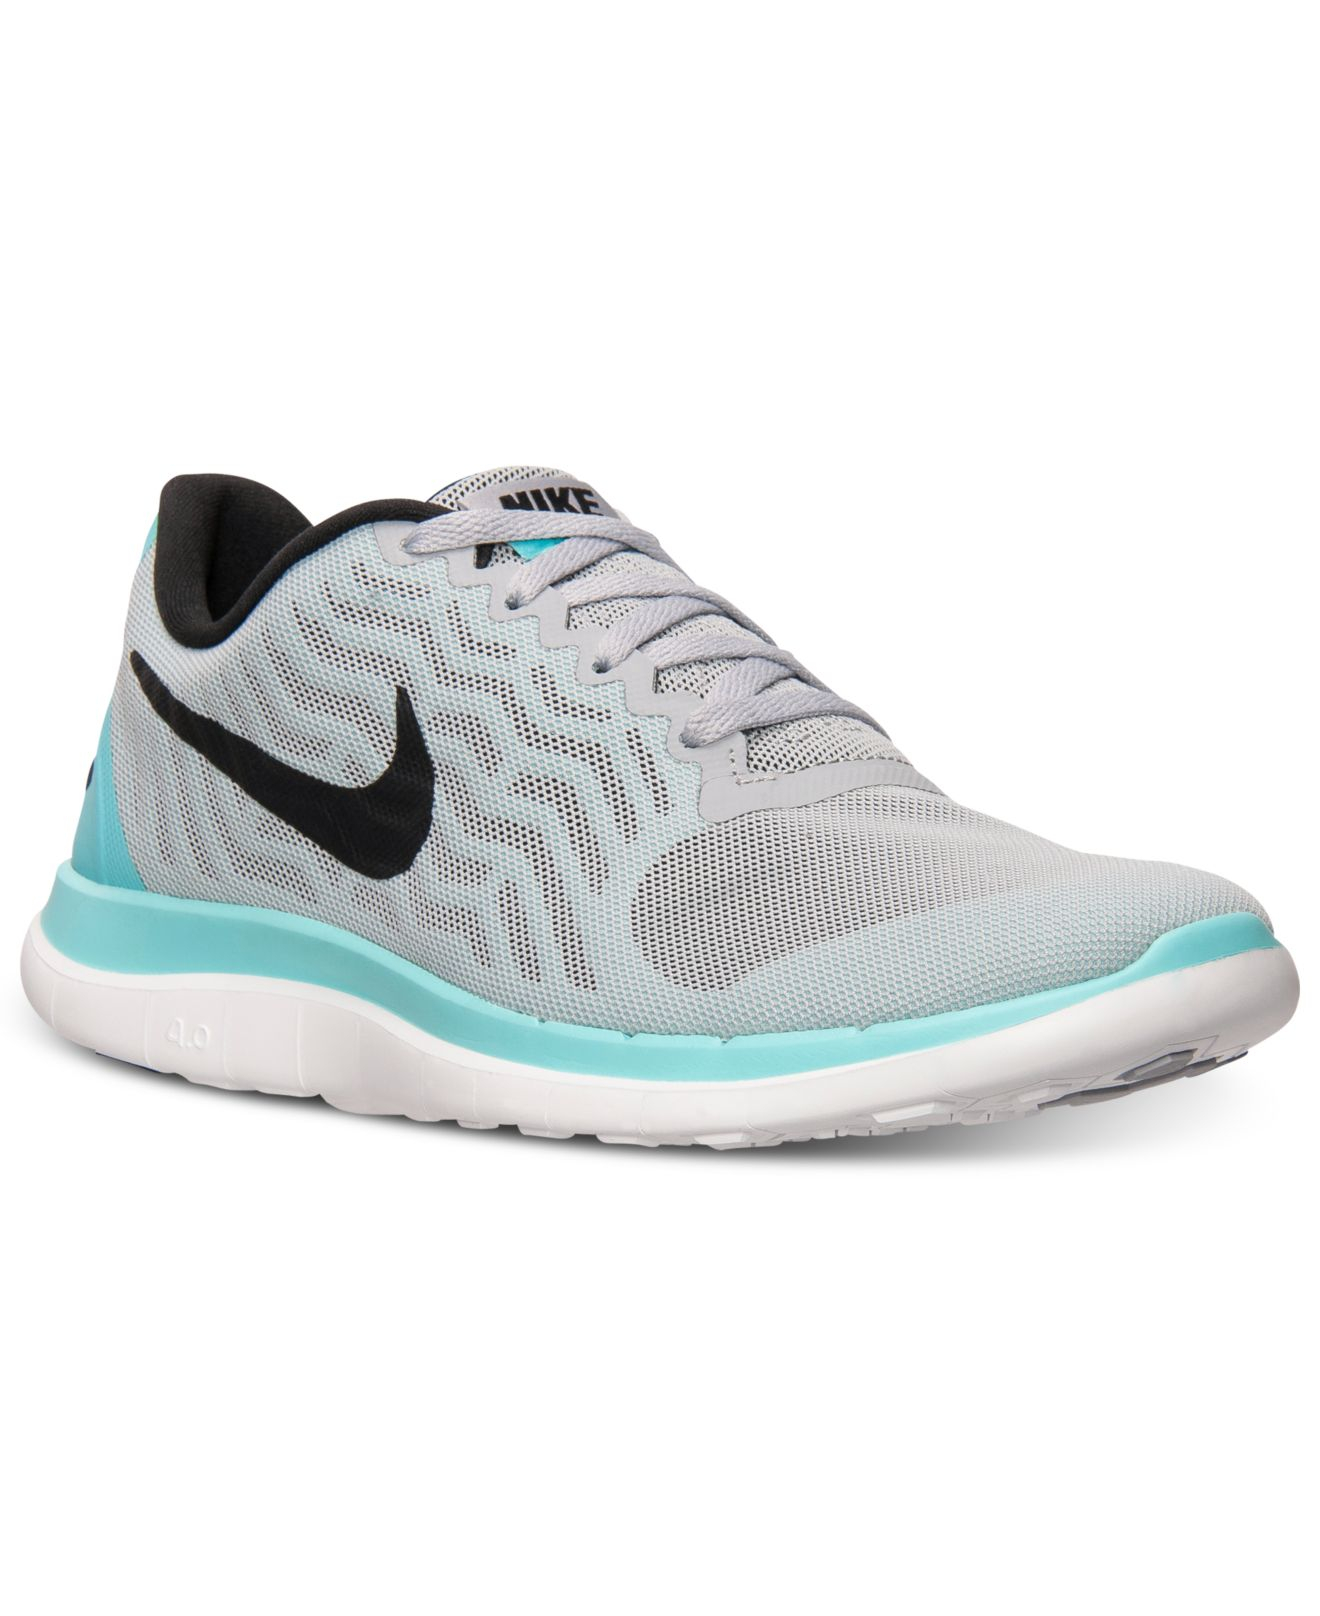 Lyst - Nike Women s Free 4.0 V5 Running Sneakers From Finish Line in ... d244aedb49